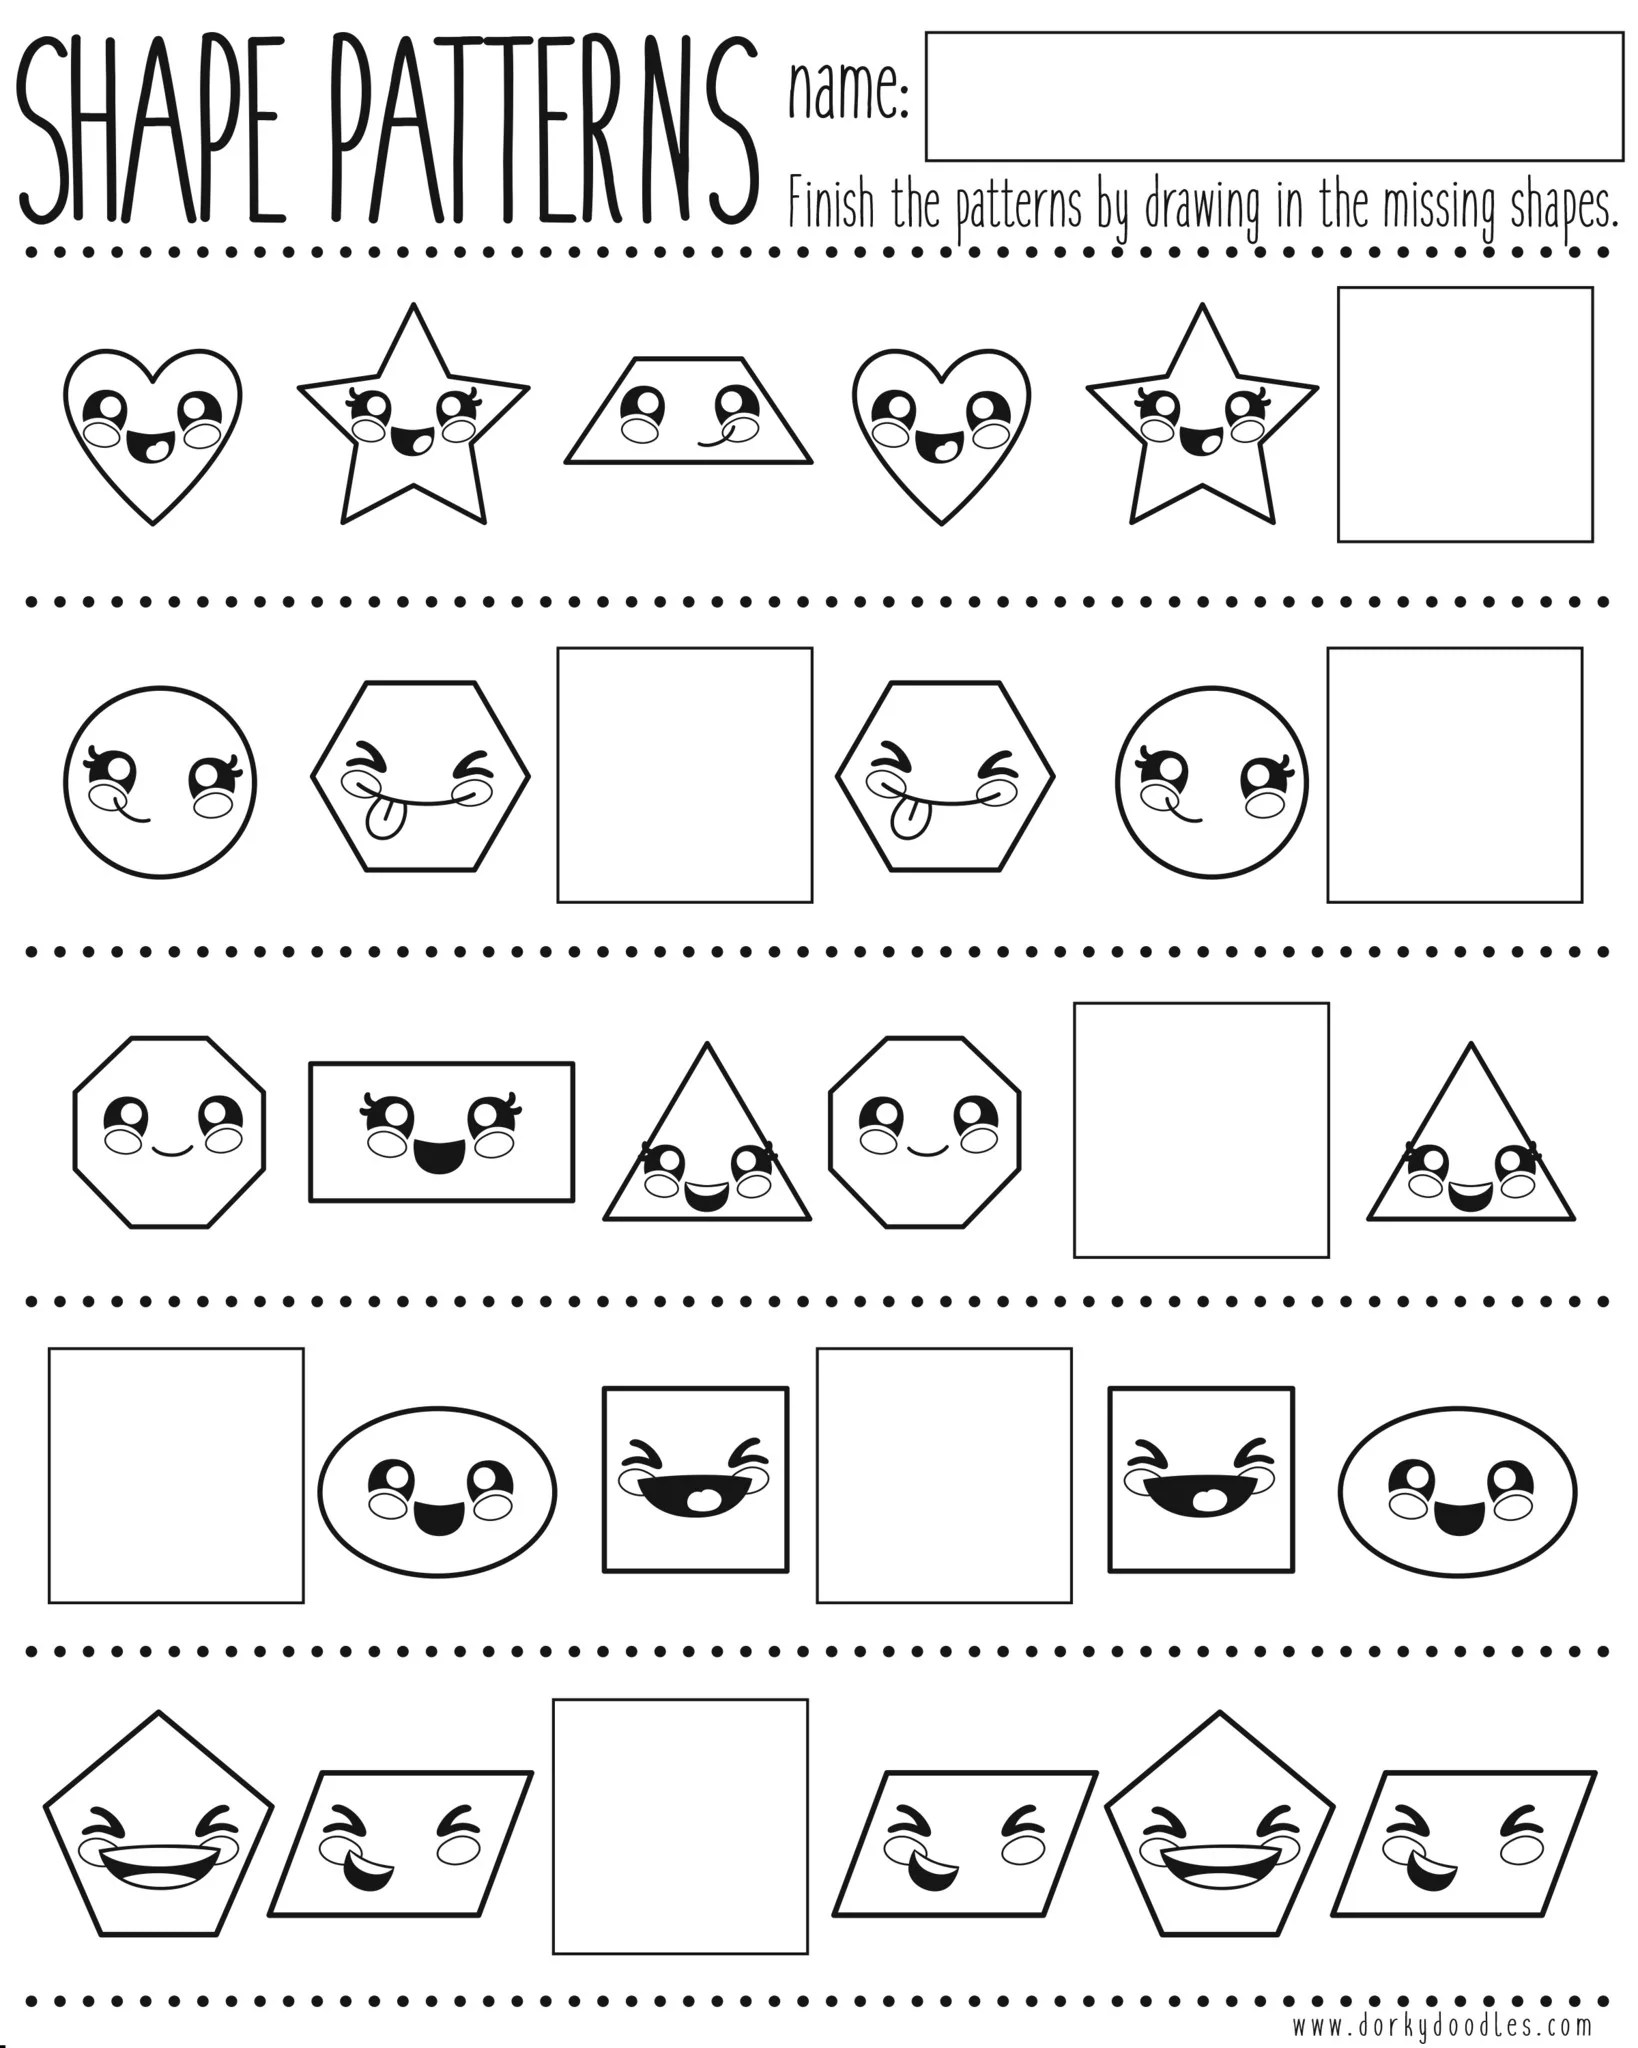 small resolution of Shapes and Pattern Practice Printable Worksheet – Dorky Doodles